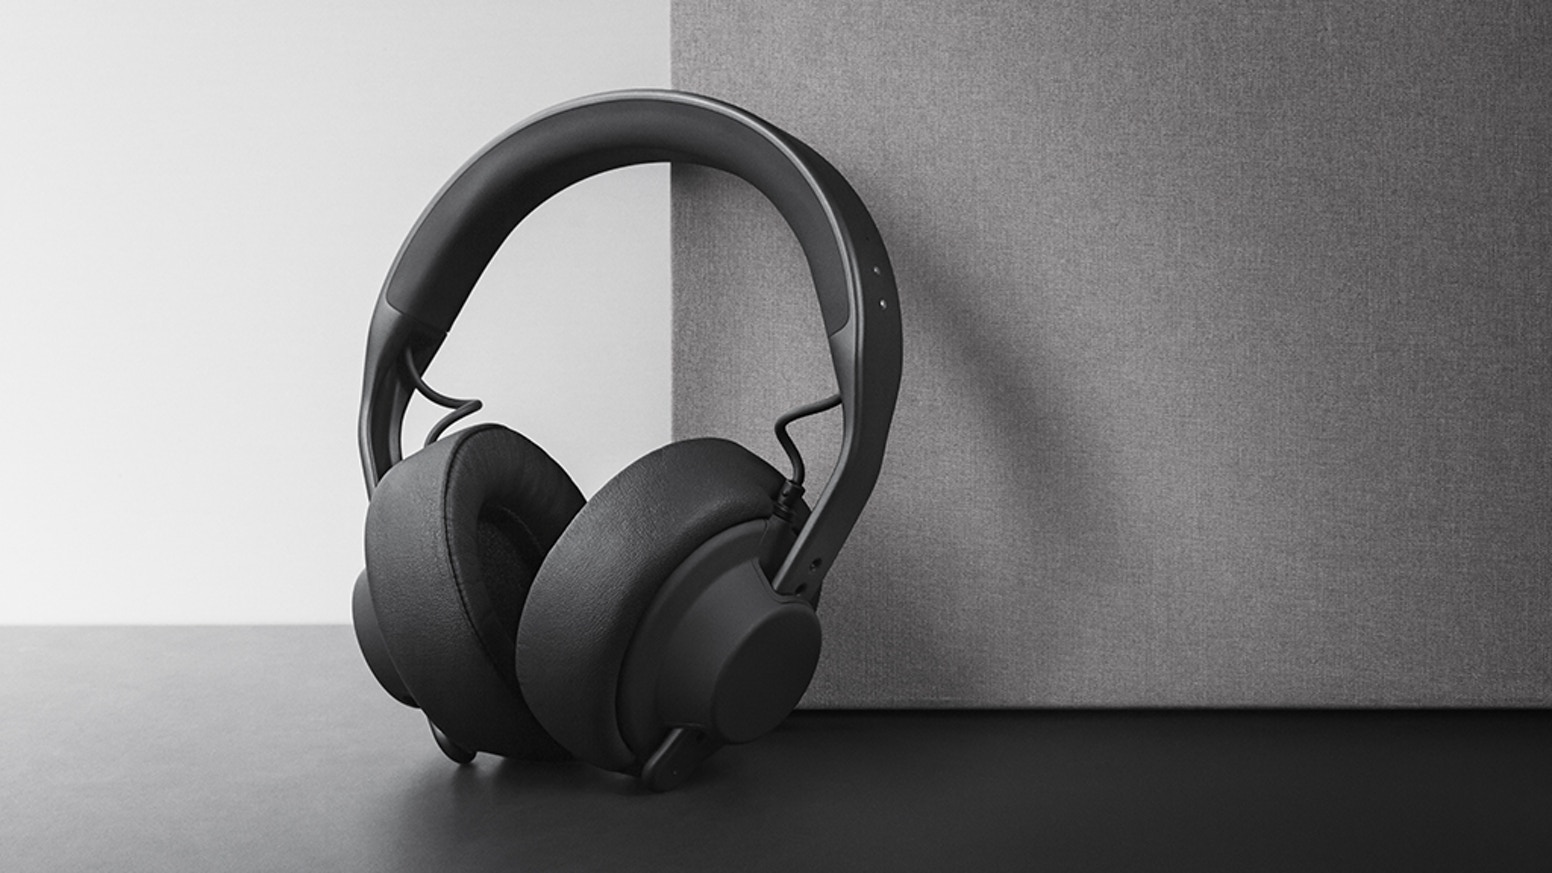 The world's most extensive modular headphone system is going wireless with the H05, our smart Bluetooth headband.